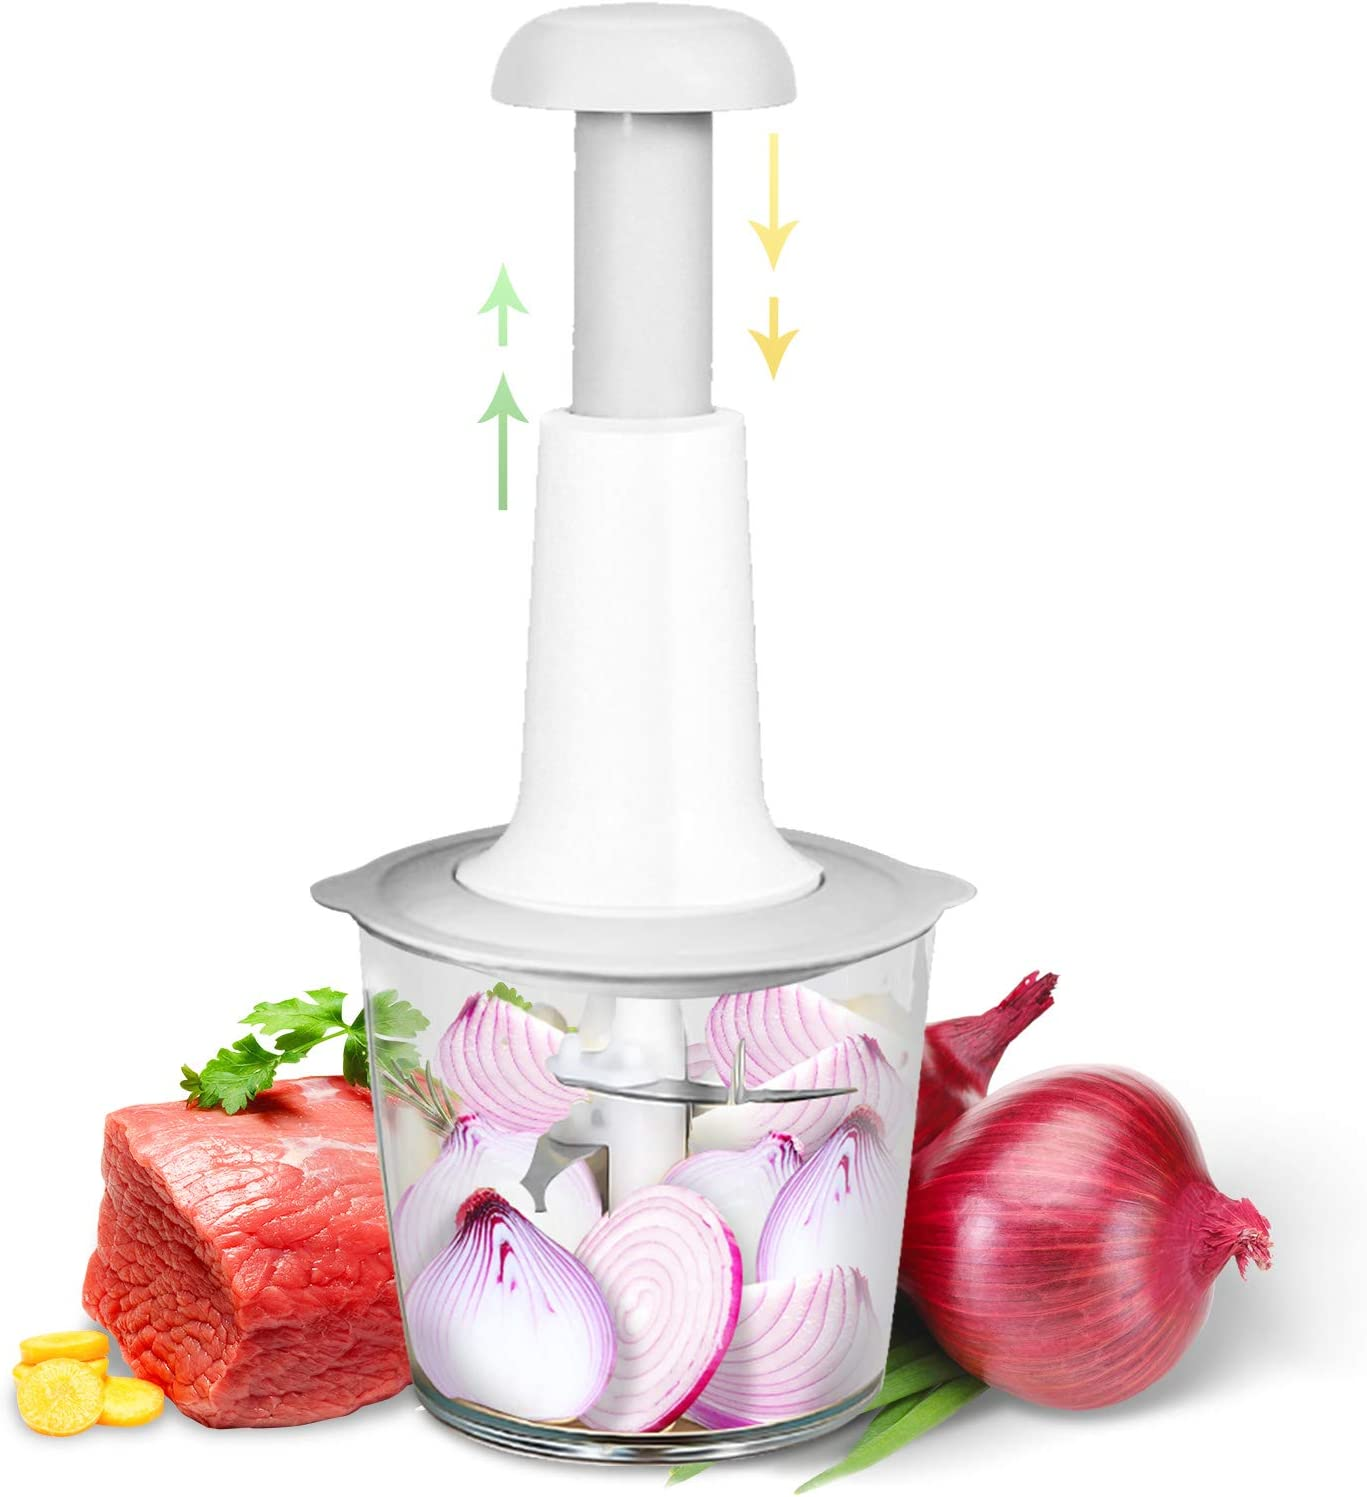 DVE Manual Food Chopper Mincer Processor Portable Food Processor for Vegetables, Garlic, Onion and Meat,Commercial Quality With Easy-Clean Design